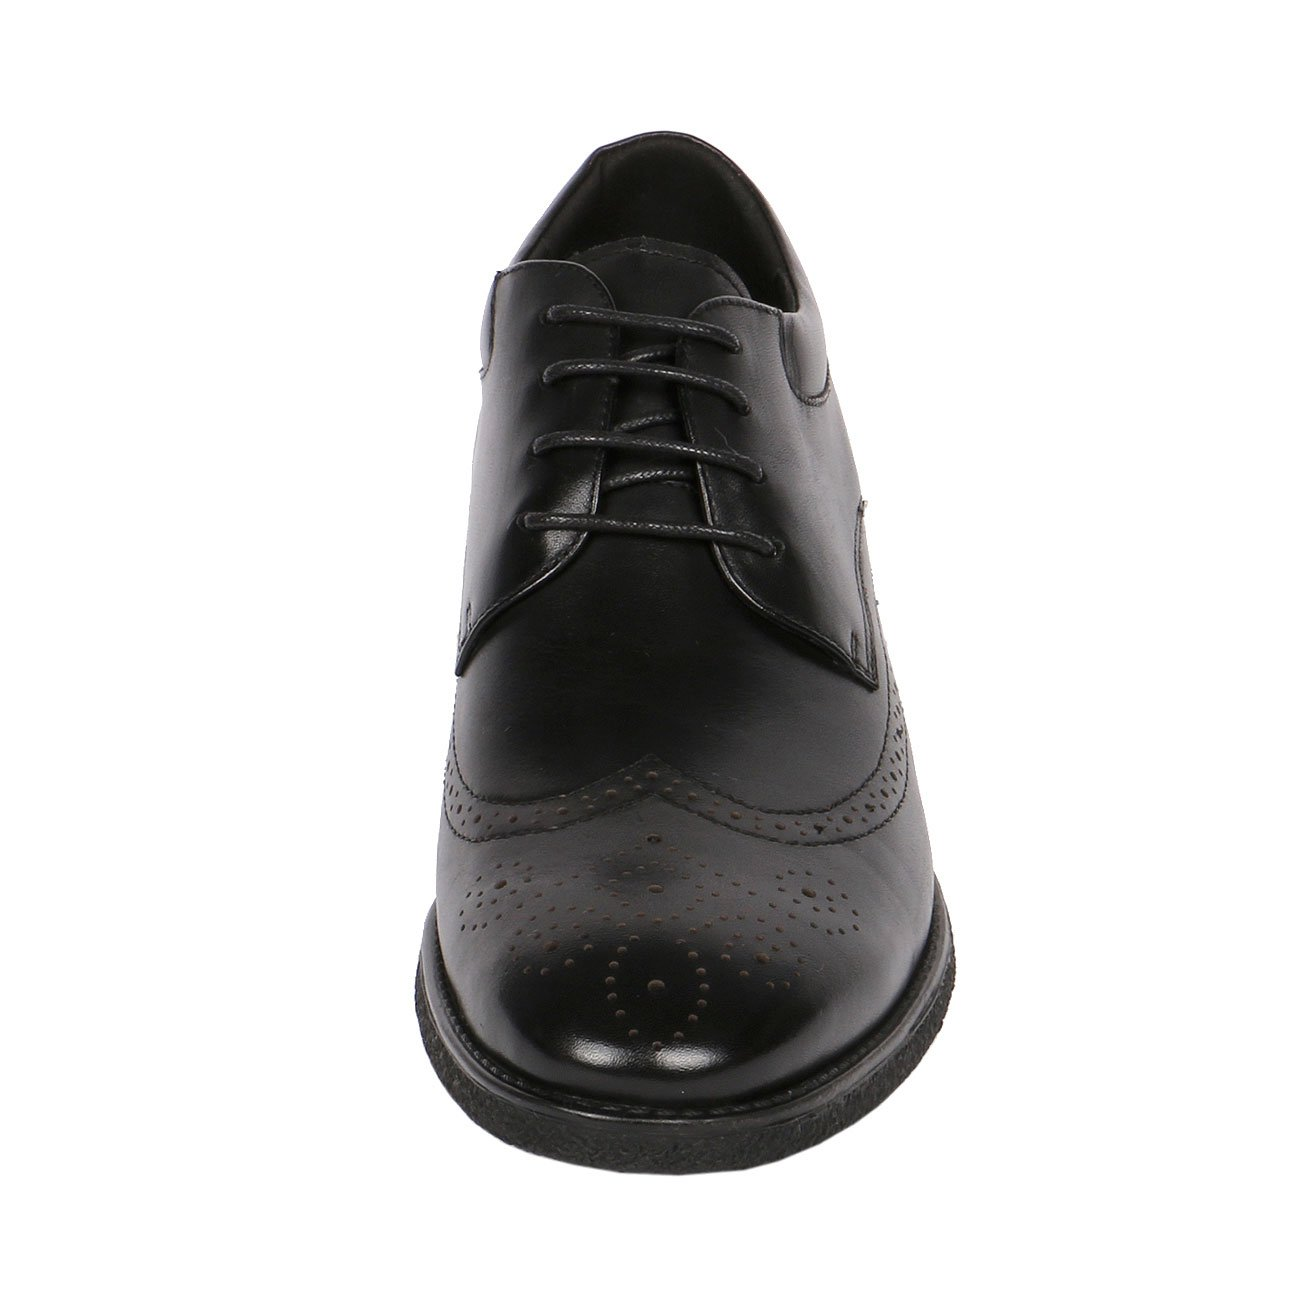 CYD21BL JOTA Shoes Handsome Leather Shapes a Punching Wingtip with 3 Height Elevation